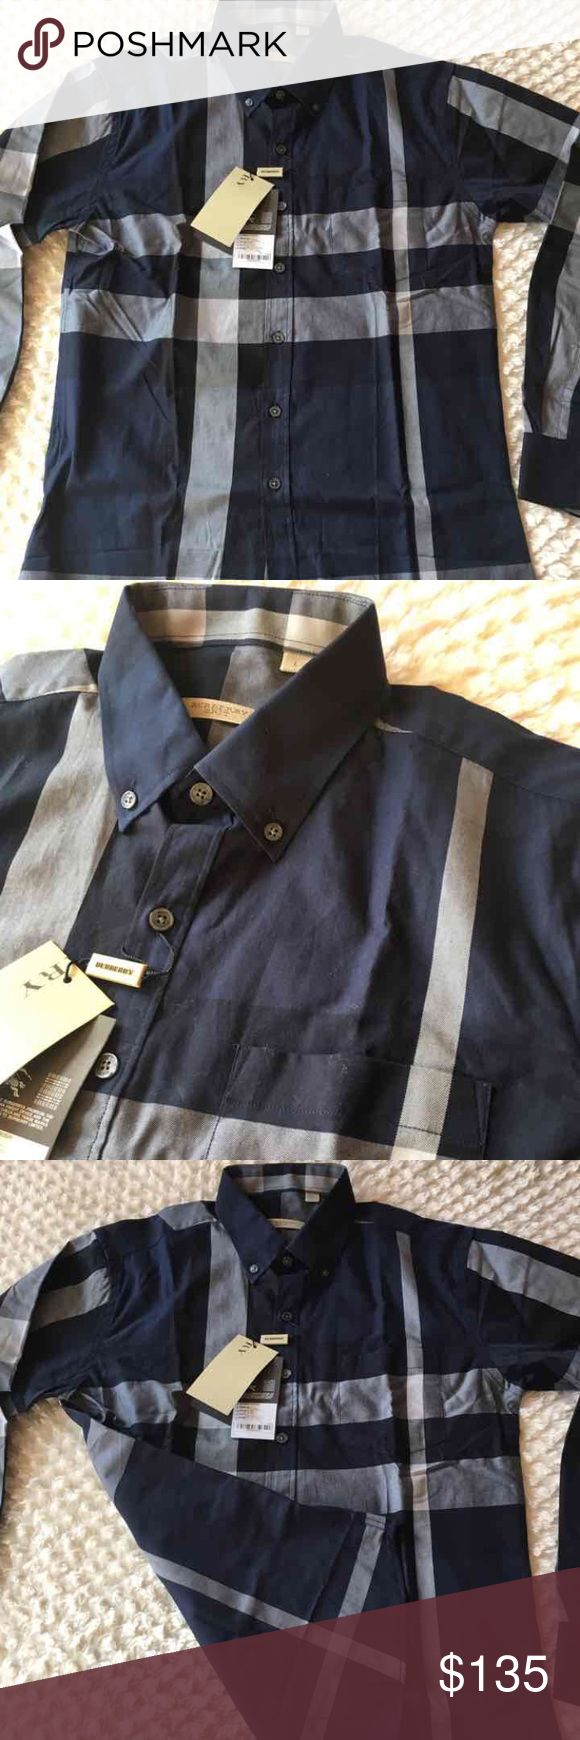 New burberry shirt for men L New with tags burberry shirt for men size Large , 100% cotton, navy blue color Burberry Shirts Casual Button Down Shirts